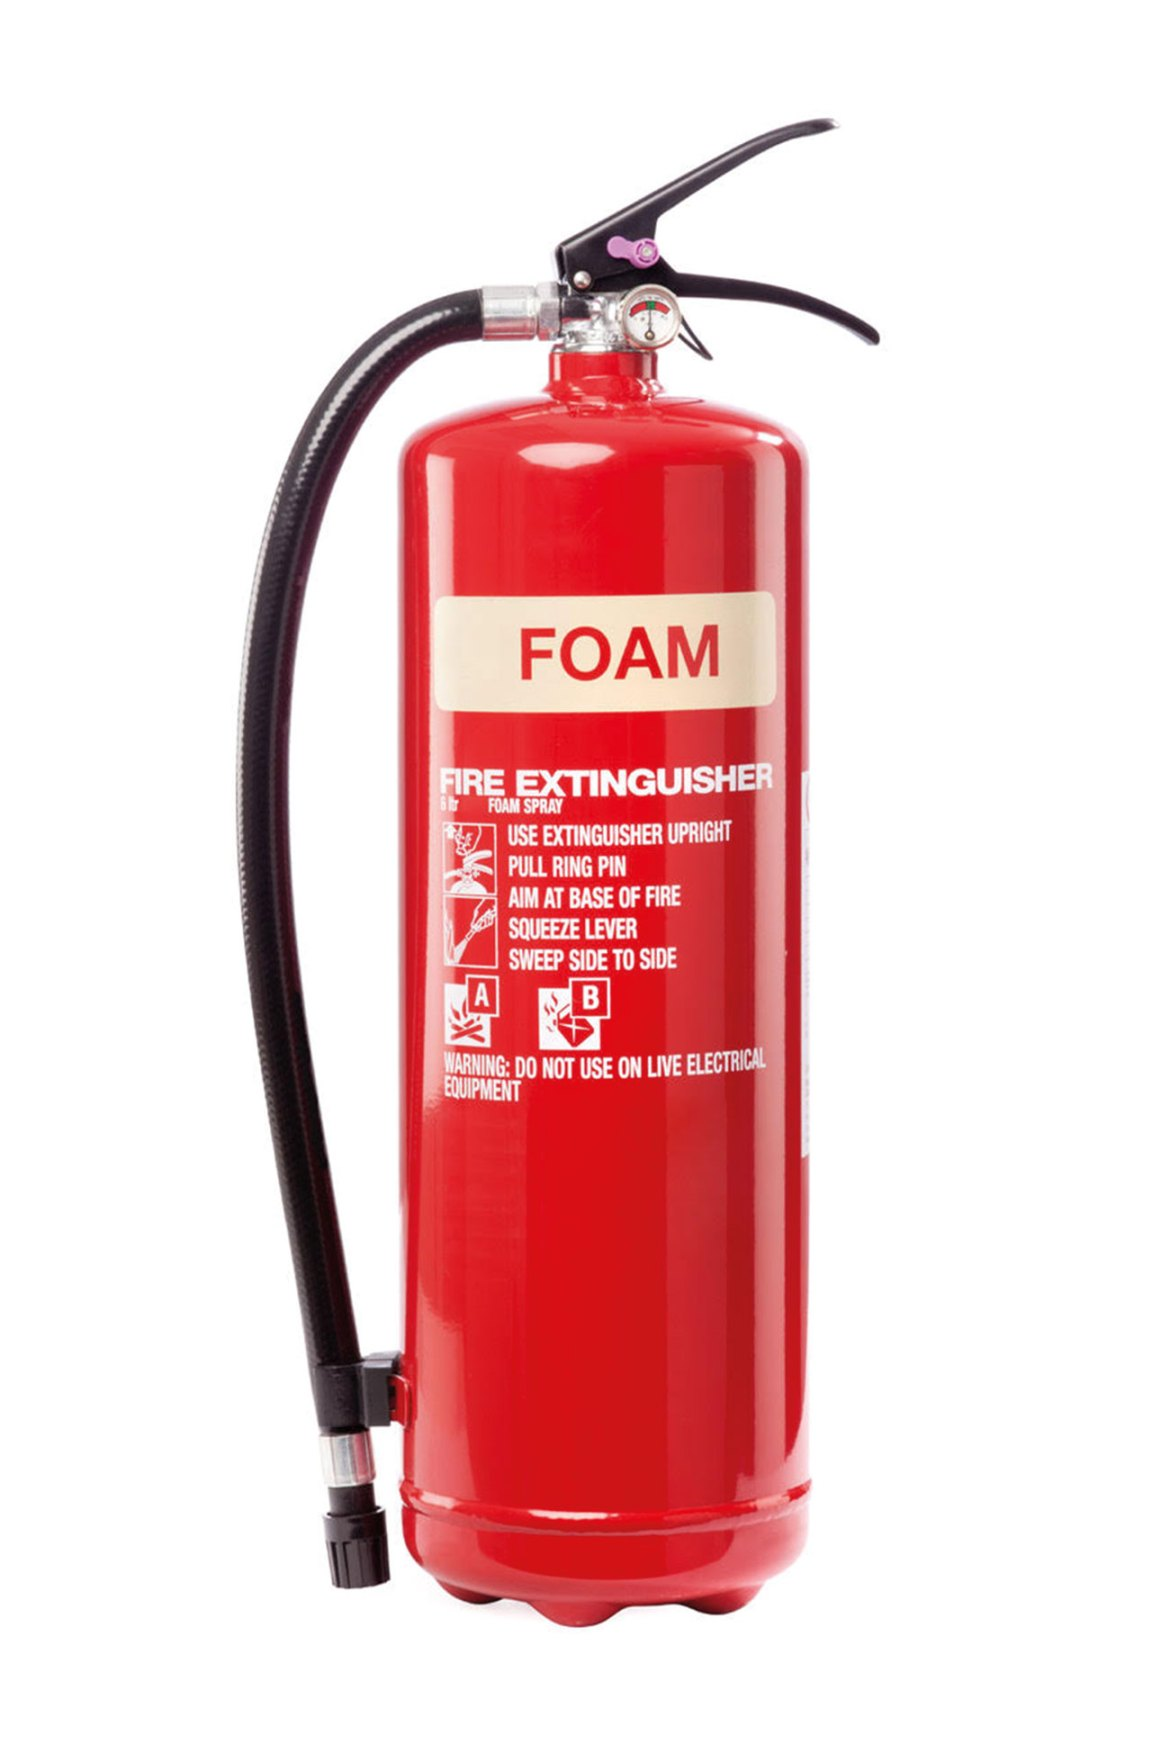 Extinguishers are often marked with the logo of the manufacturer and most end users usually expect that replacement parts would also come from the same manufacturer (generally speaking).